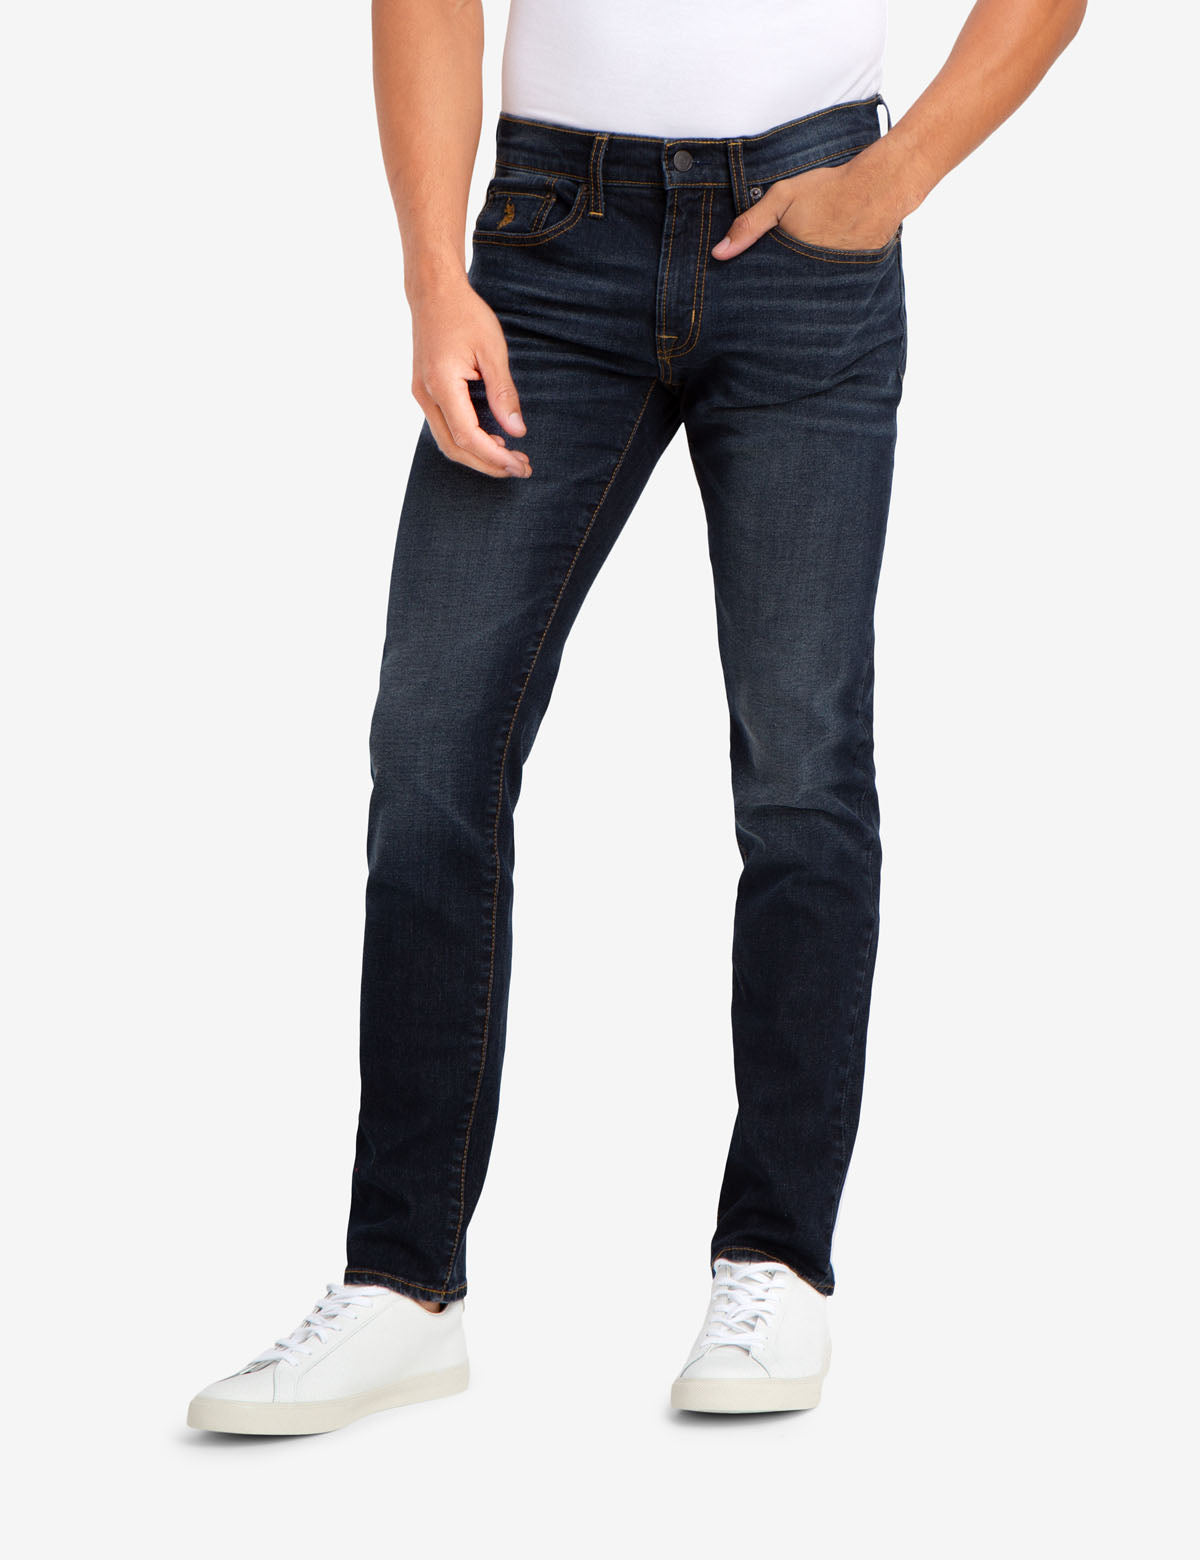 SLIM STRETCH JEANS - U.S. Polo Assn.